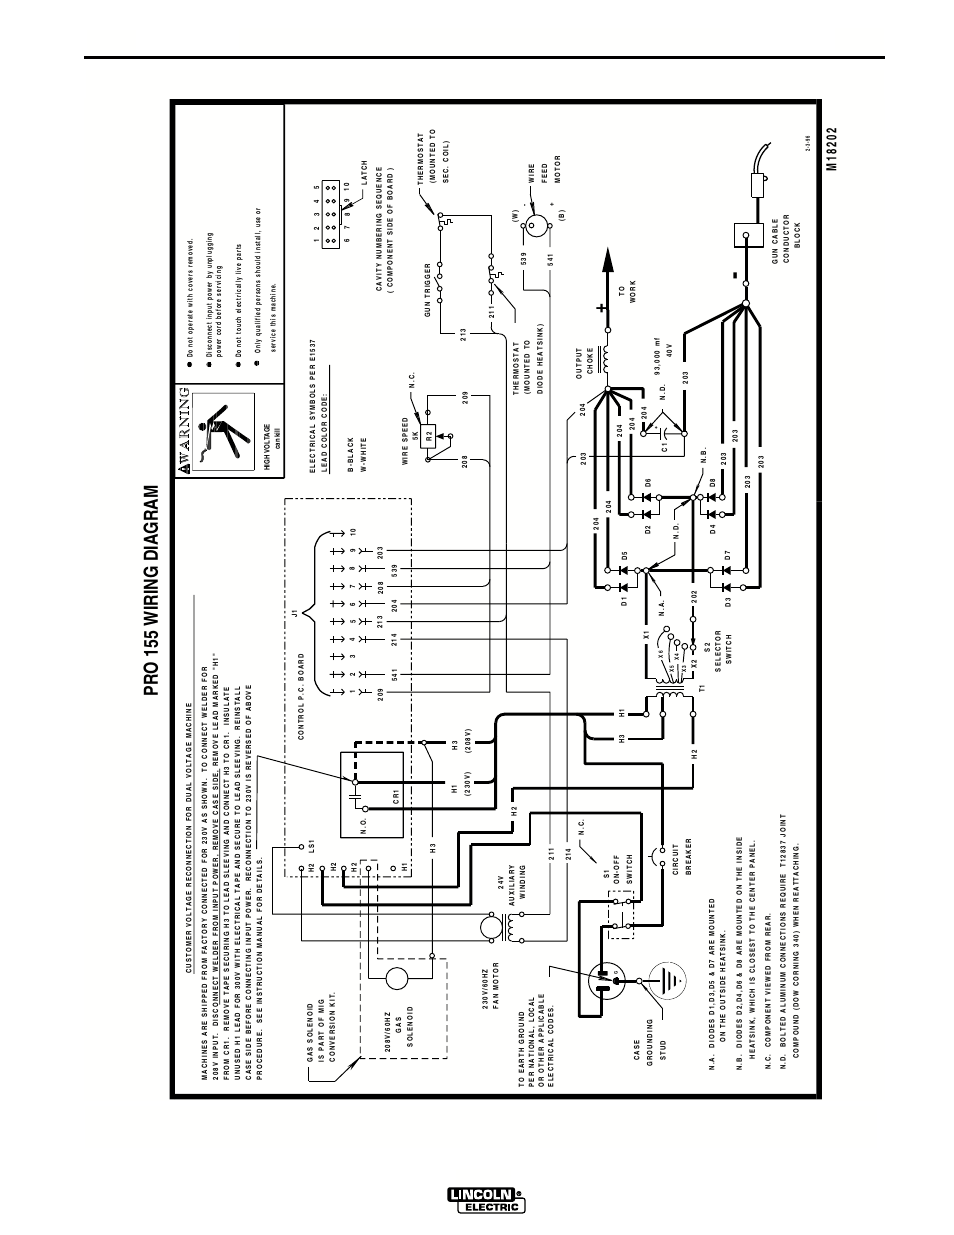 Ford F 250 Starter Wiring Diagram further 92 Lincoln Air Suspension Diagrams in addition 1989 Ford Bronco Vacuum Hose Diagram also  on 1230051 1977 super c er special 2